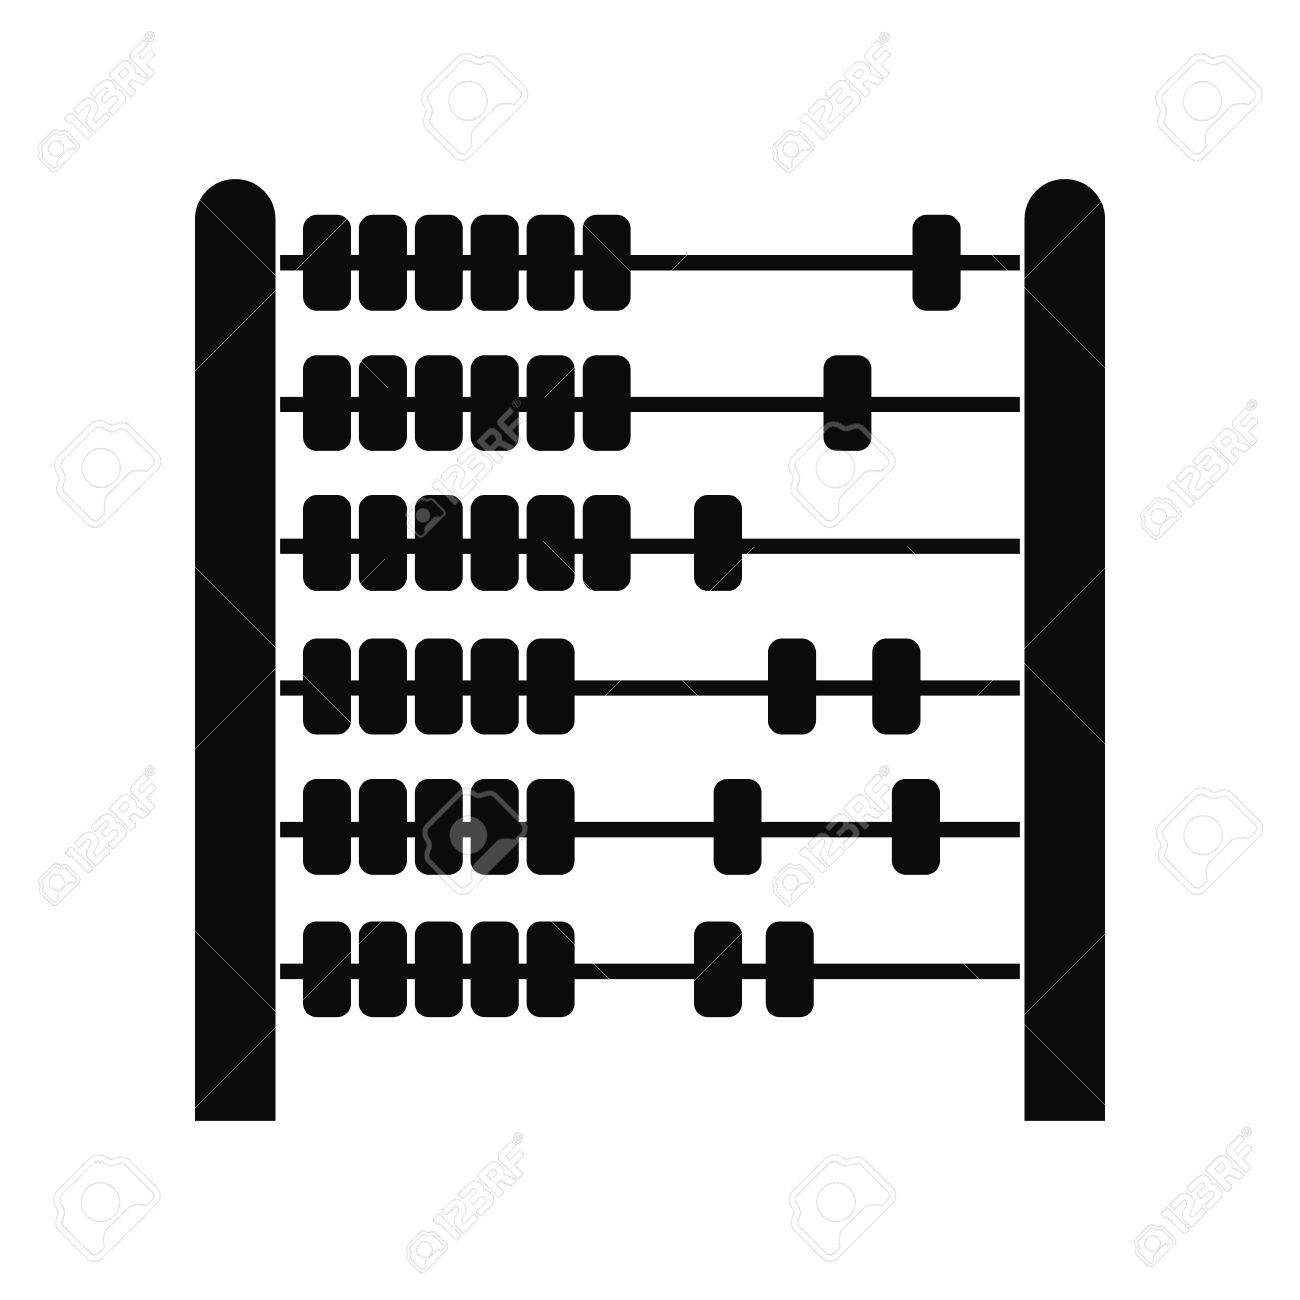 Children abacus black simple icon isolated on white background.